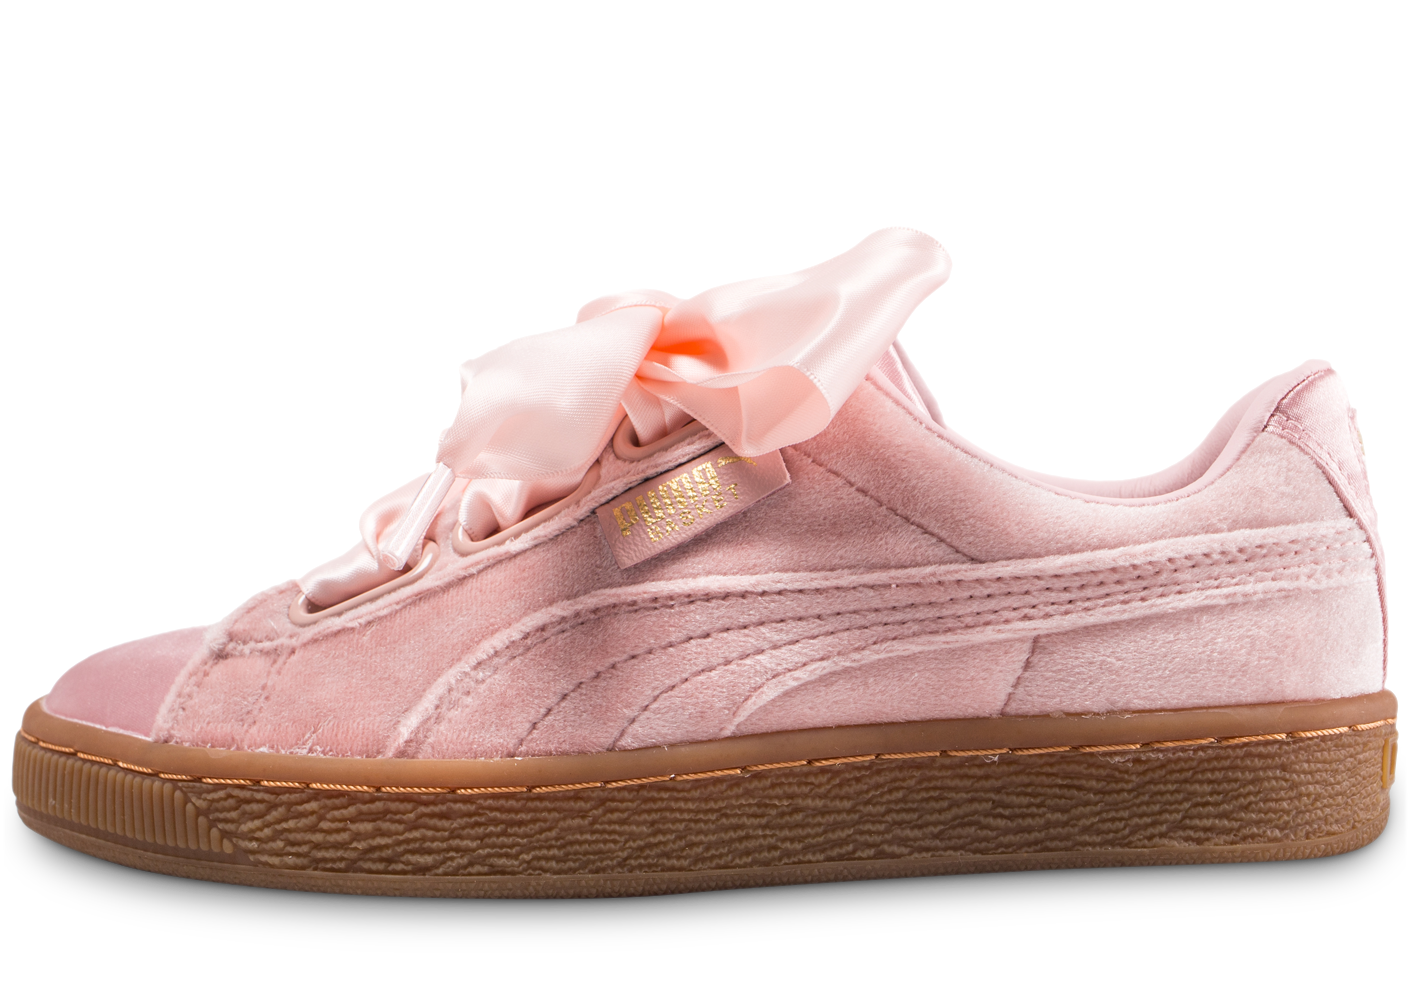 Puma Femme Basket Heart Rose Baskets